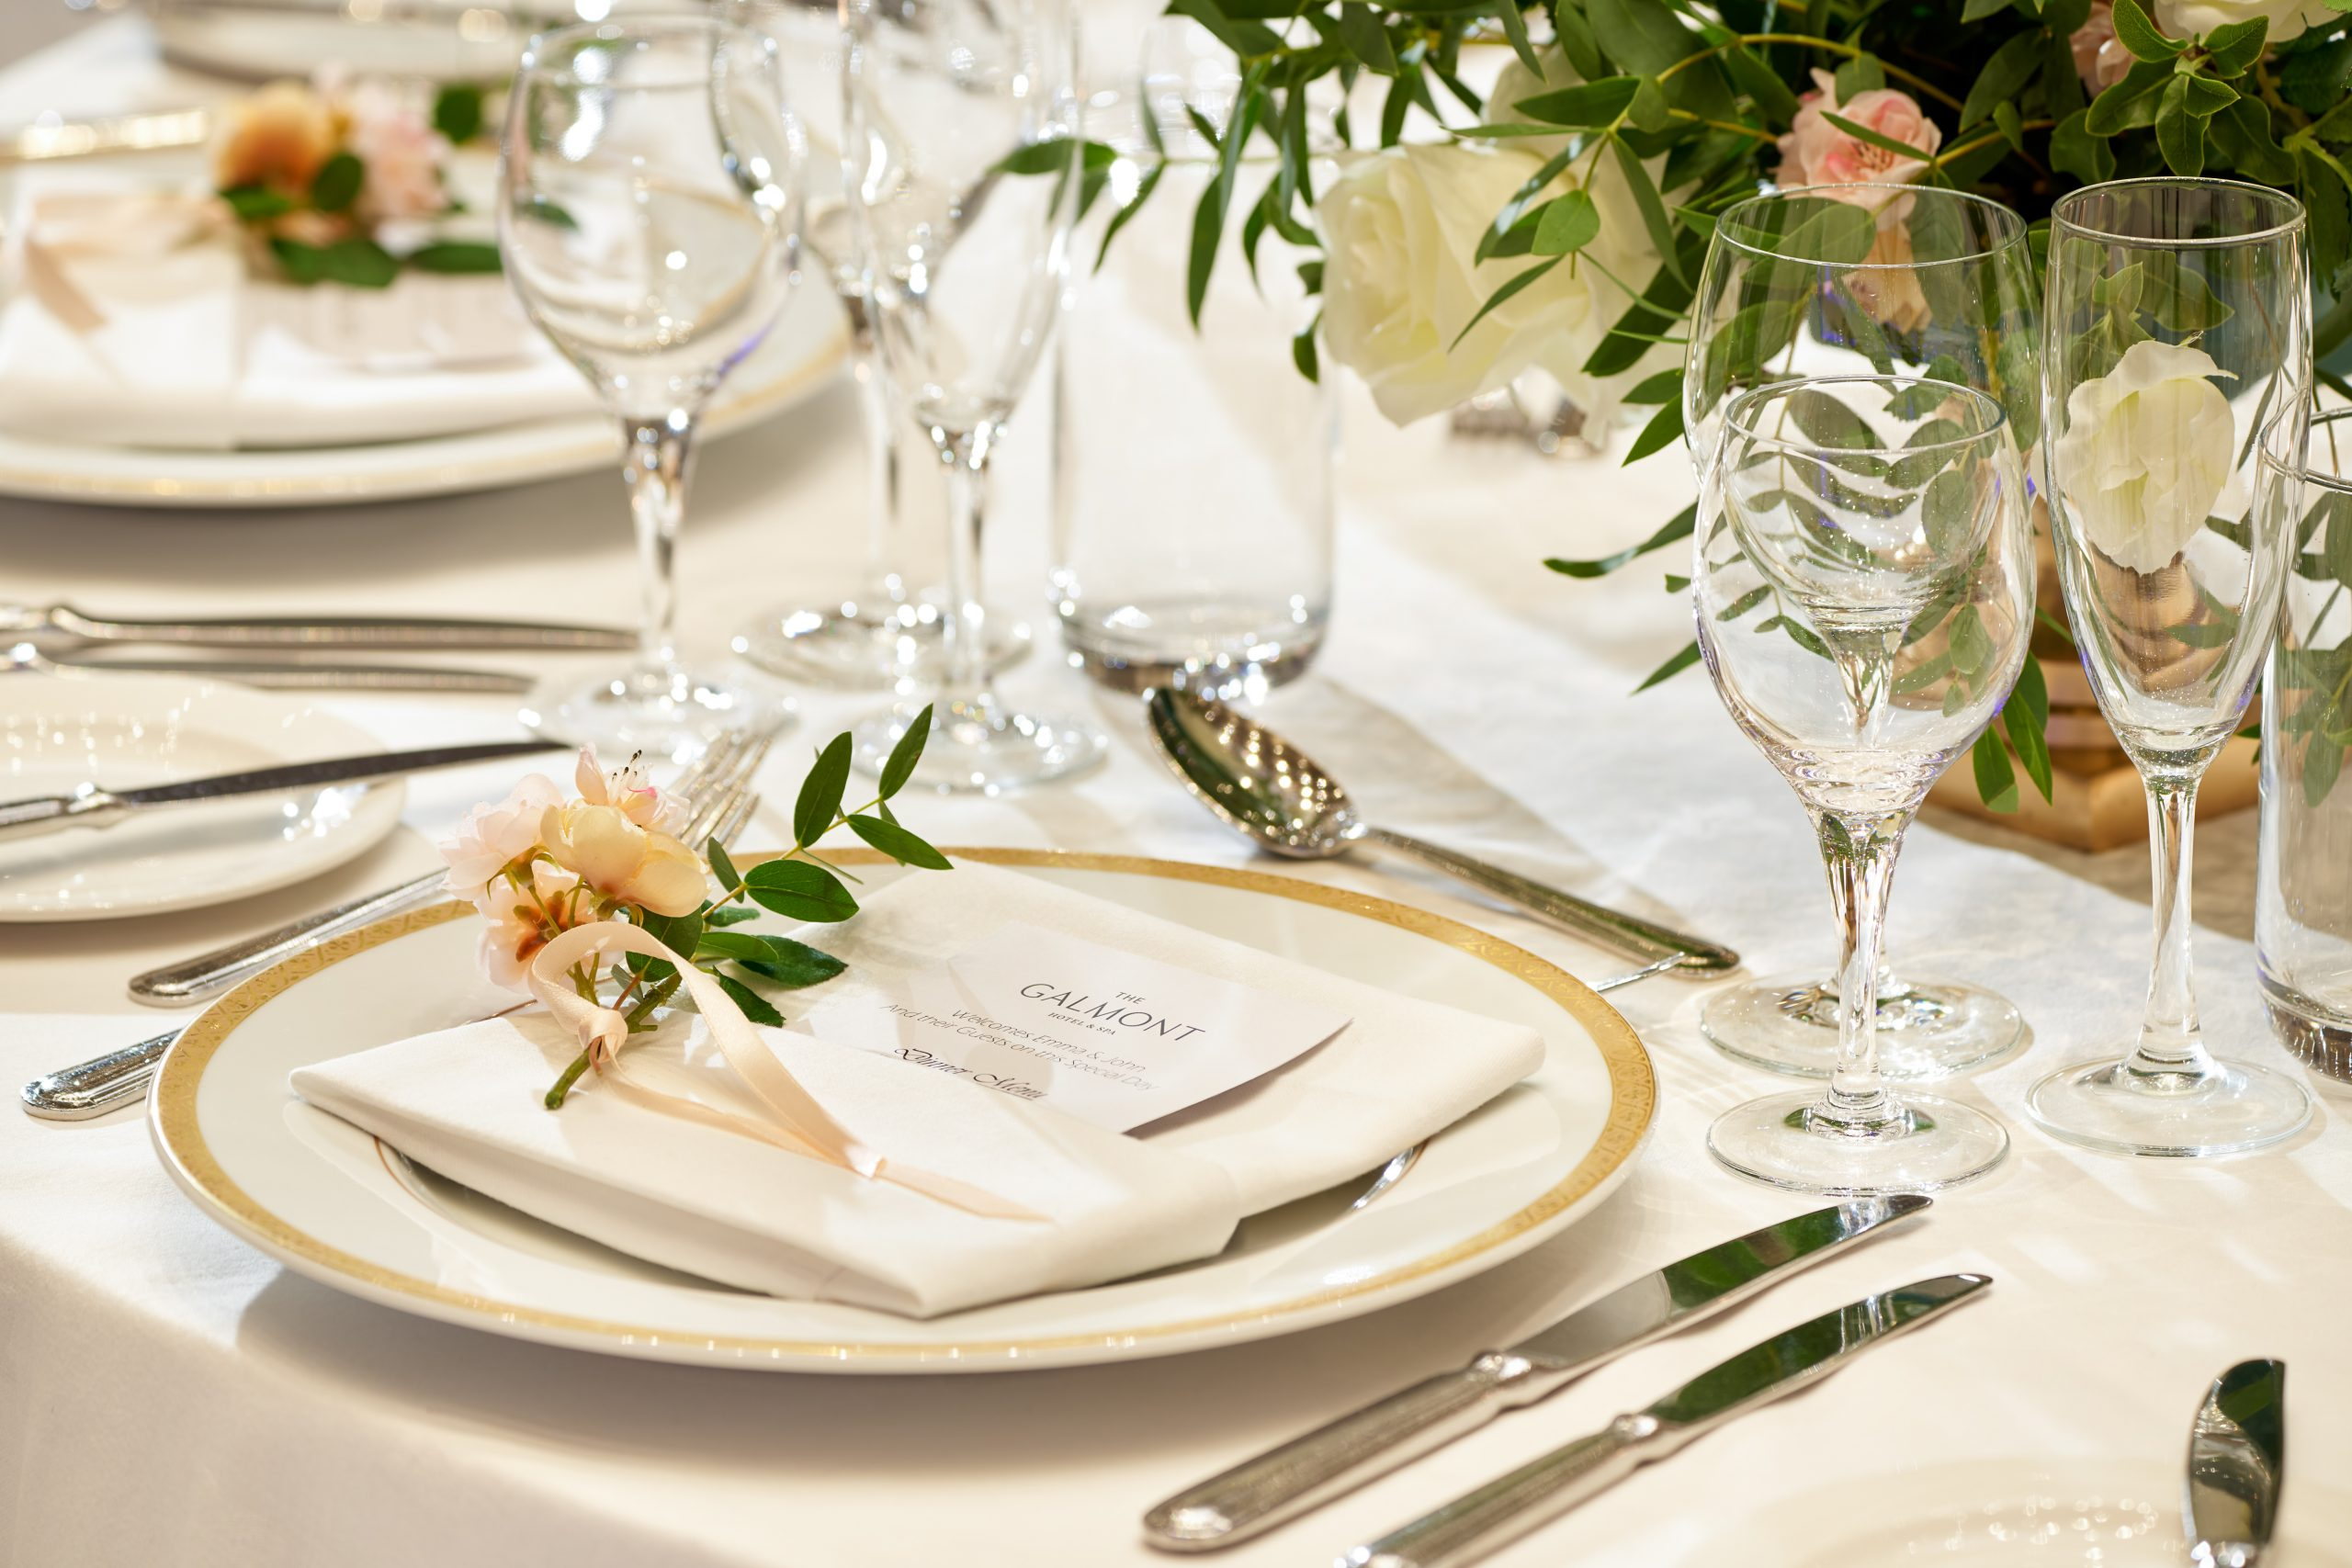 Weddings at The Galmont Hotel & Spa